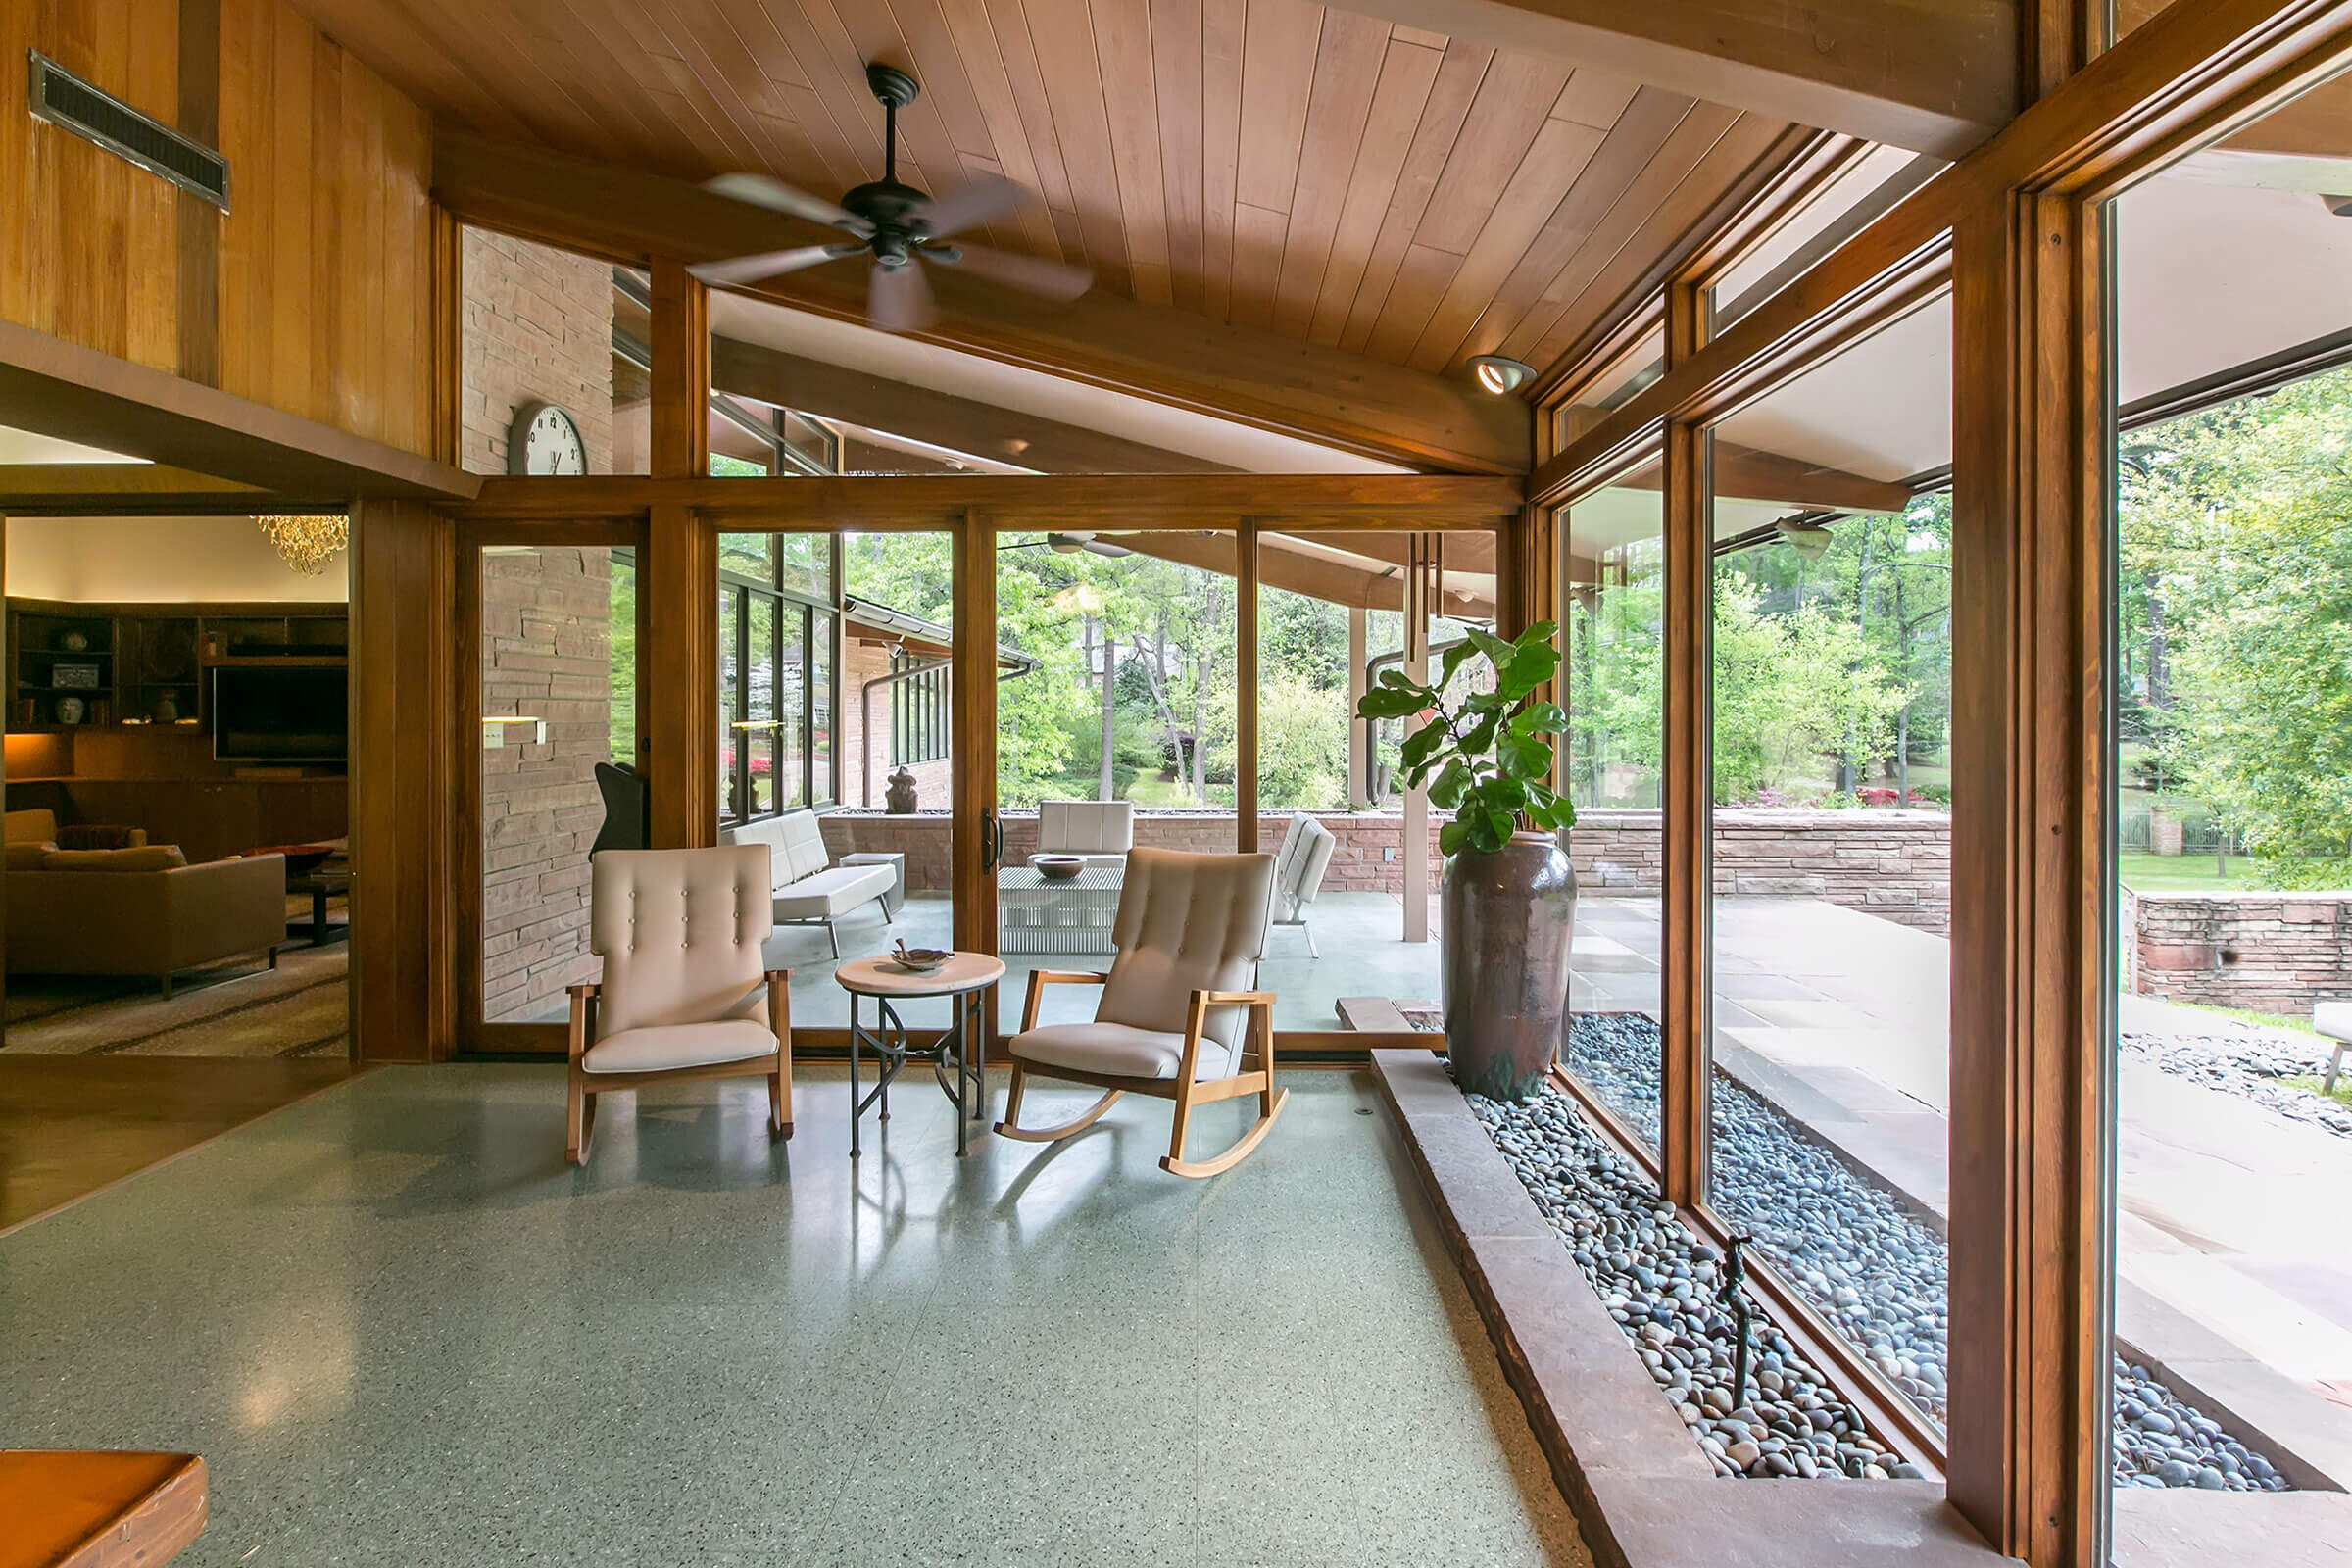 Interior View Of Porch With Ultimate Swinging French Door